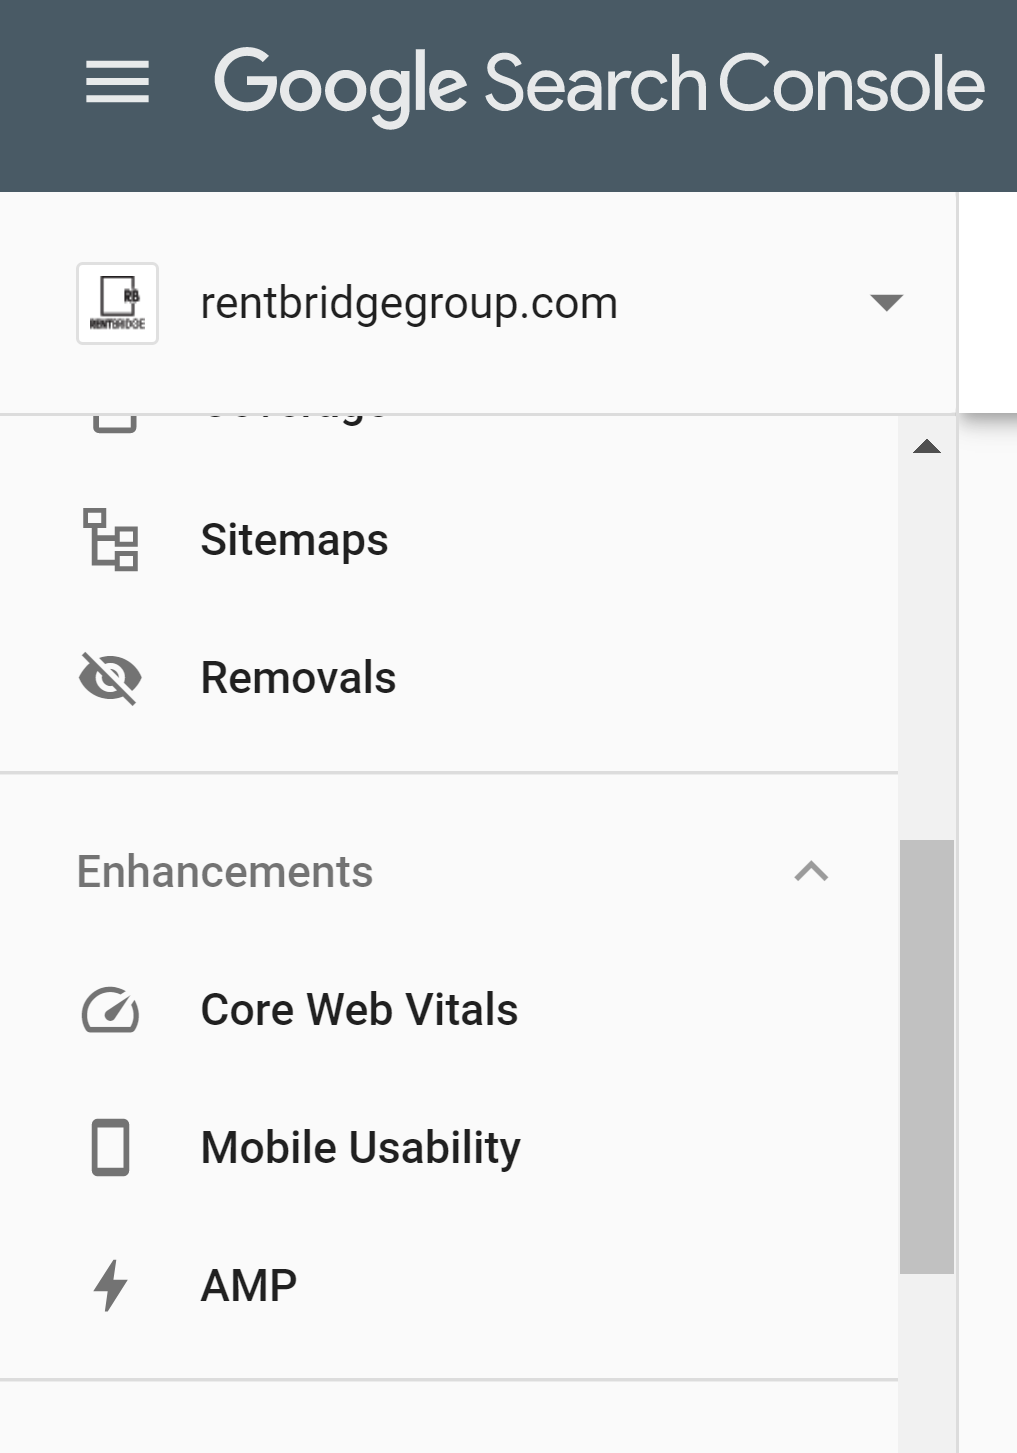 Google Search Console panel showing enhancements